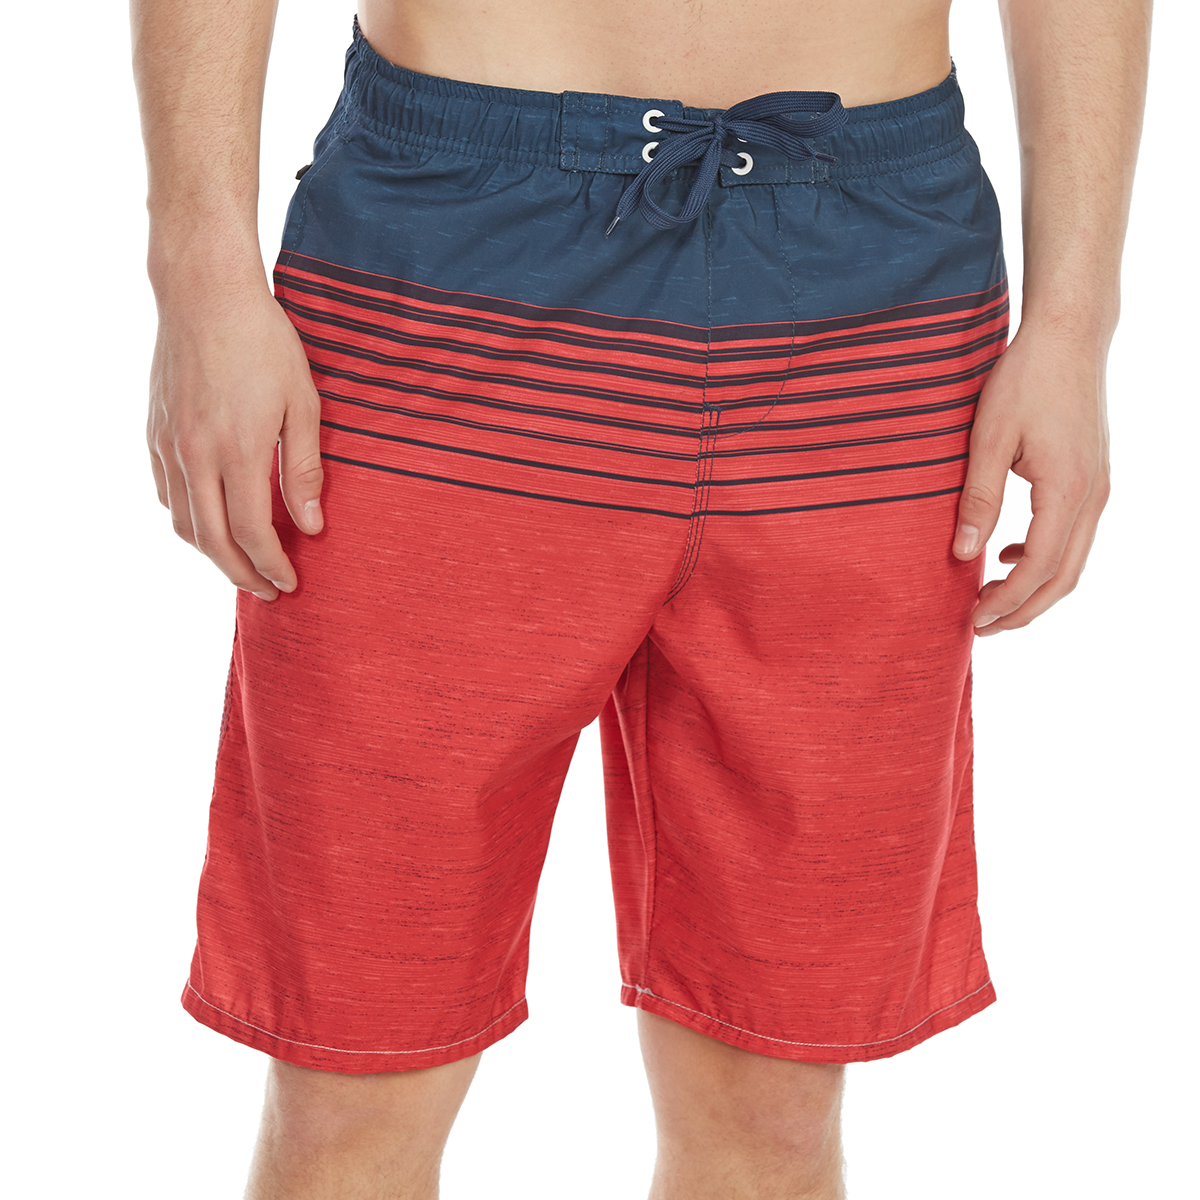 Burnside Guys' Forever Number One E-Board Shorts - Red, M